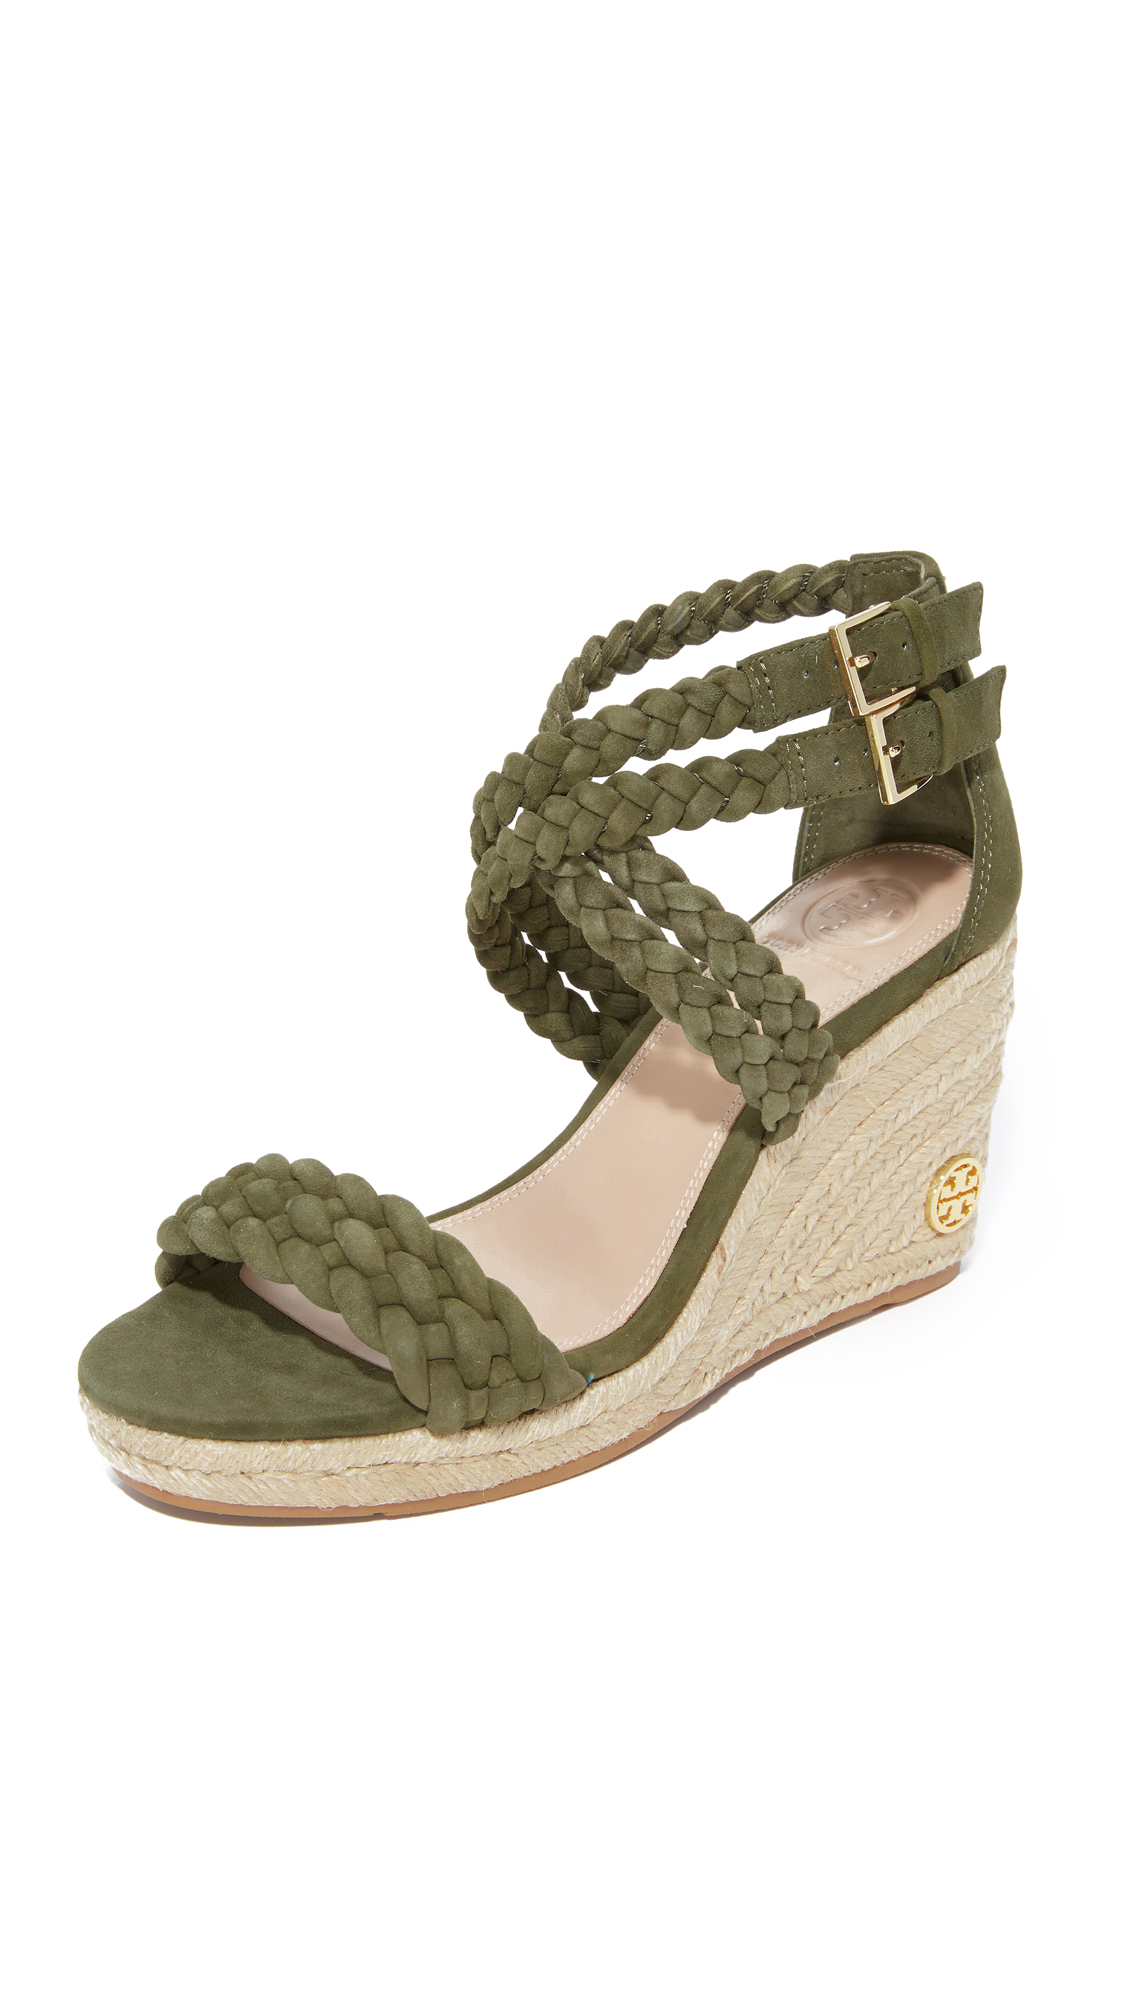 Tory Burch Bailey 90mm Ankle Strap Wedge Espadrilles - Banana Leaf